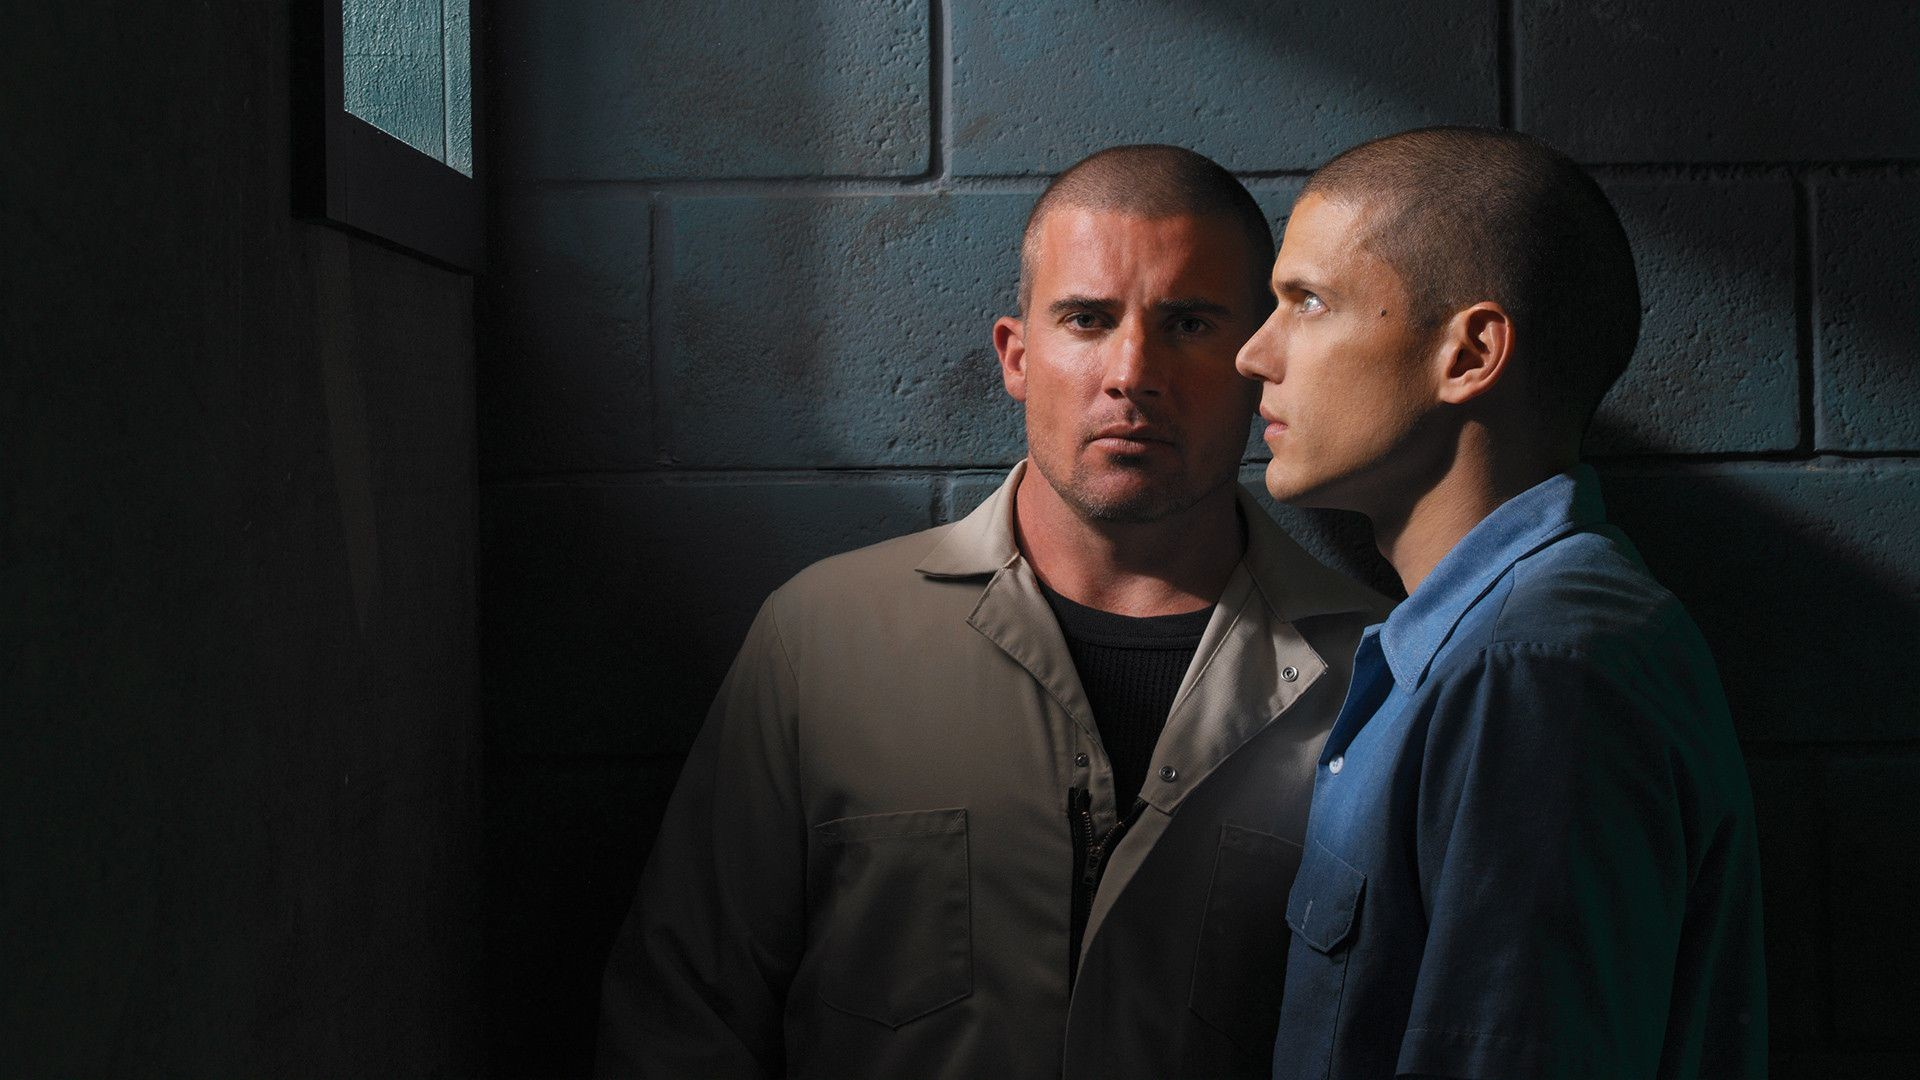 1920x1080 images about Prison Break on Pinterest 1920×1080 Prison Break Wallpaper (44  Wallpapers)